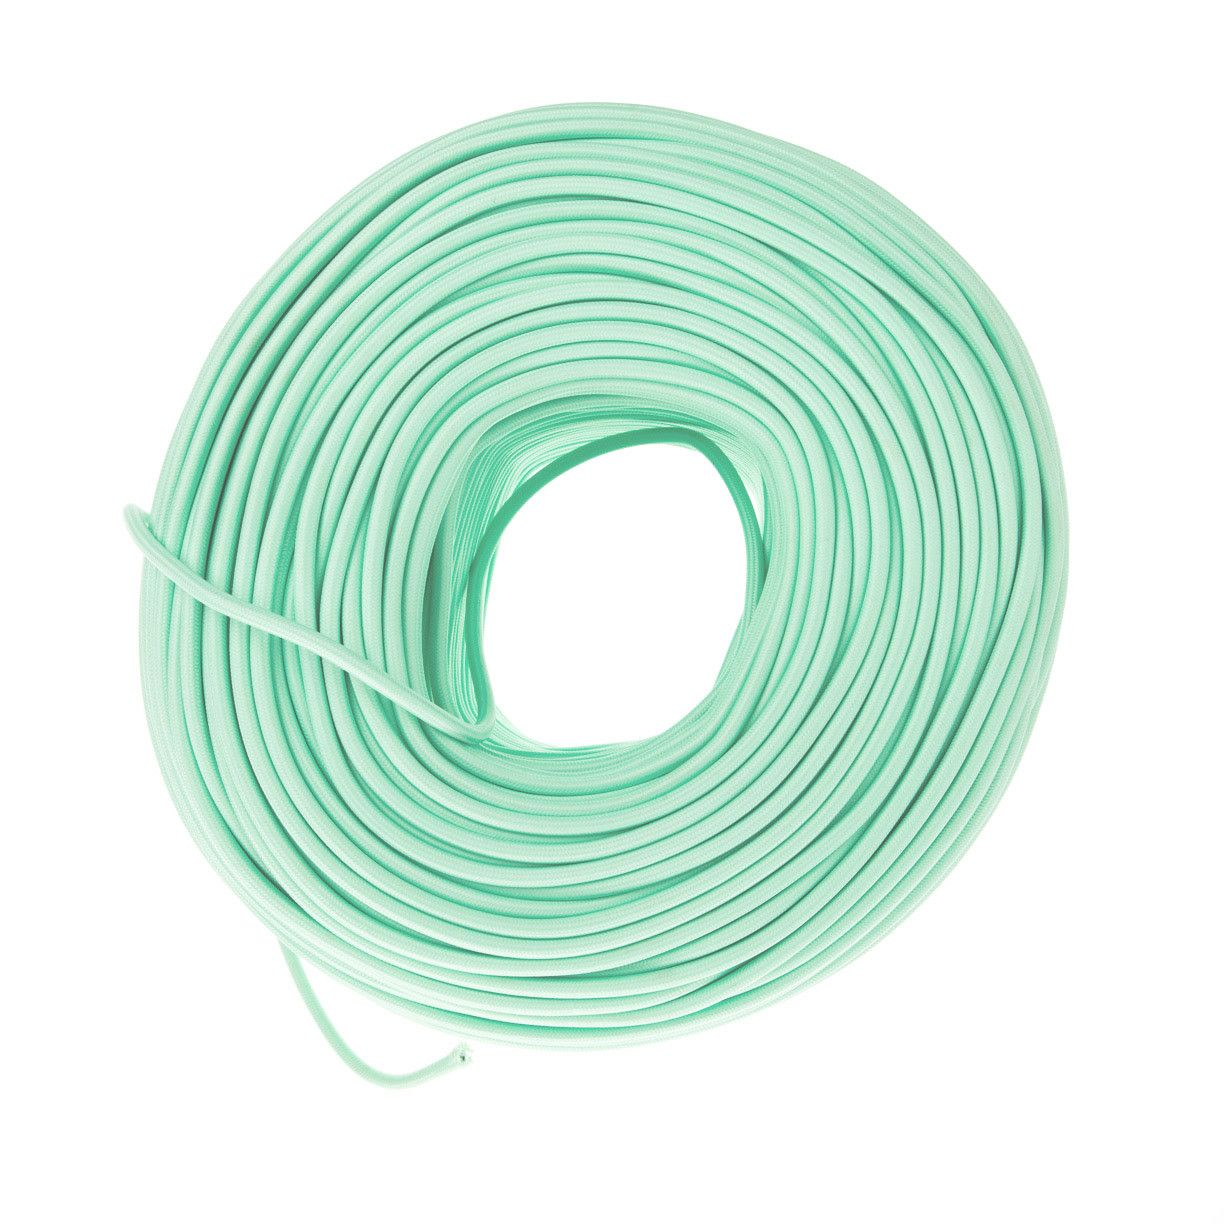 Cloth Covered Cord - Mint Green | Color Cord Company